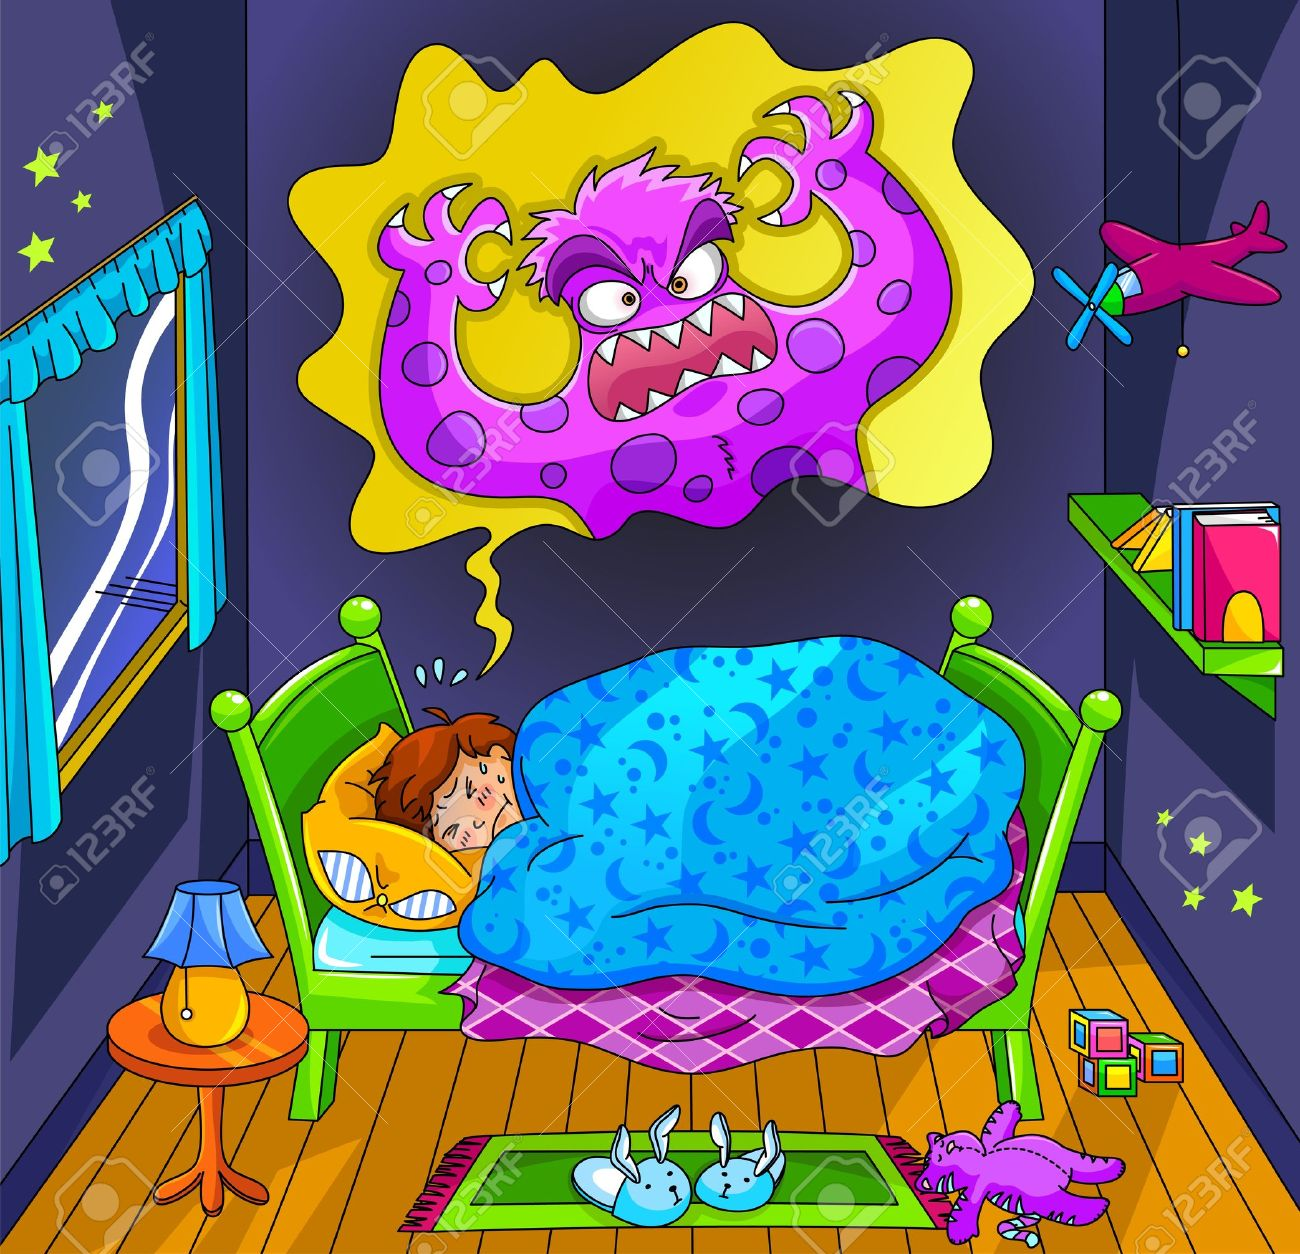 Dreaming clipart animated Bad Dream  Clipart